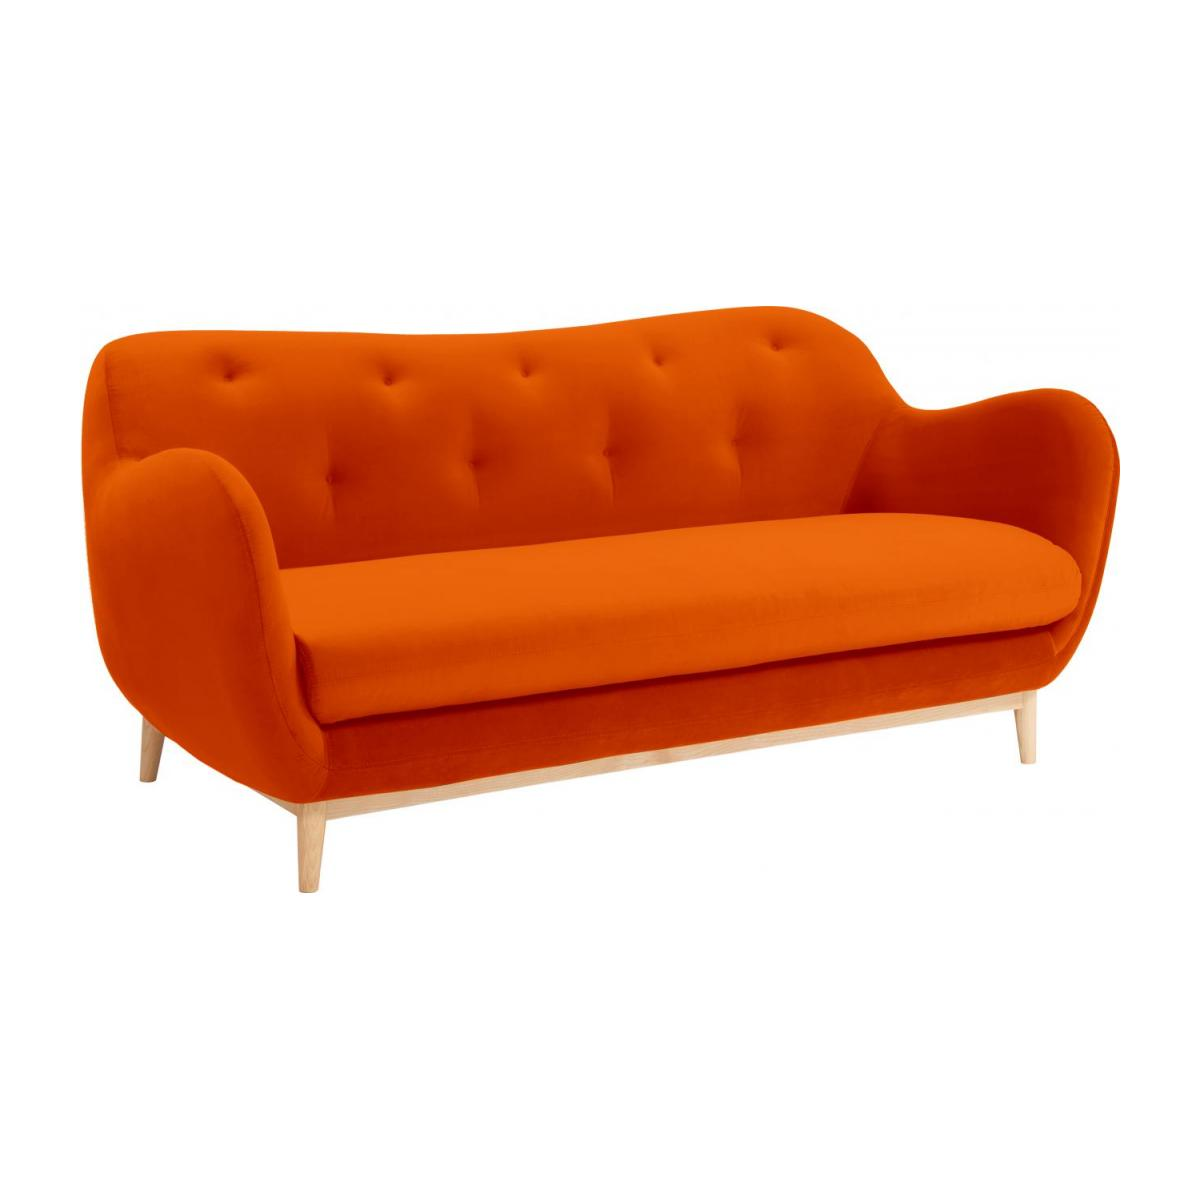 3-Sitzer-Sofa aus Samt - Orange - Design by Adrien Carvès n°1